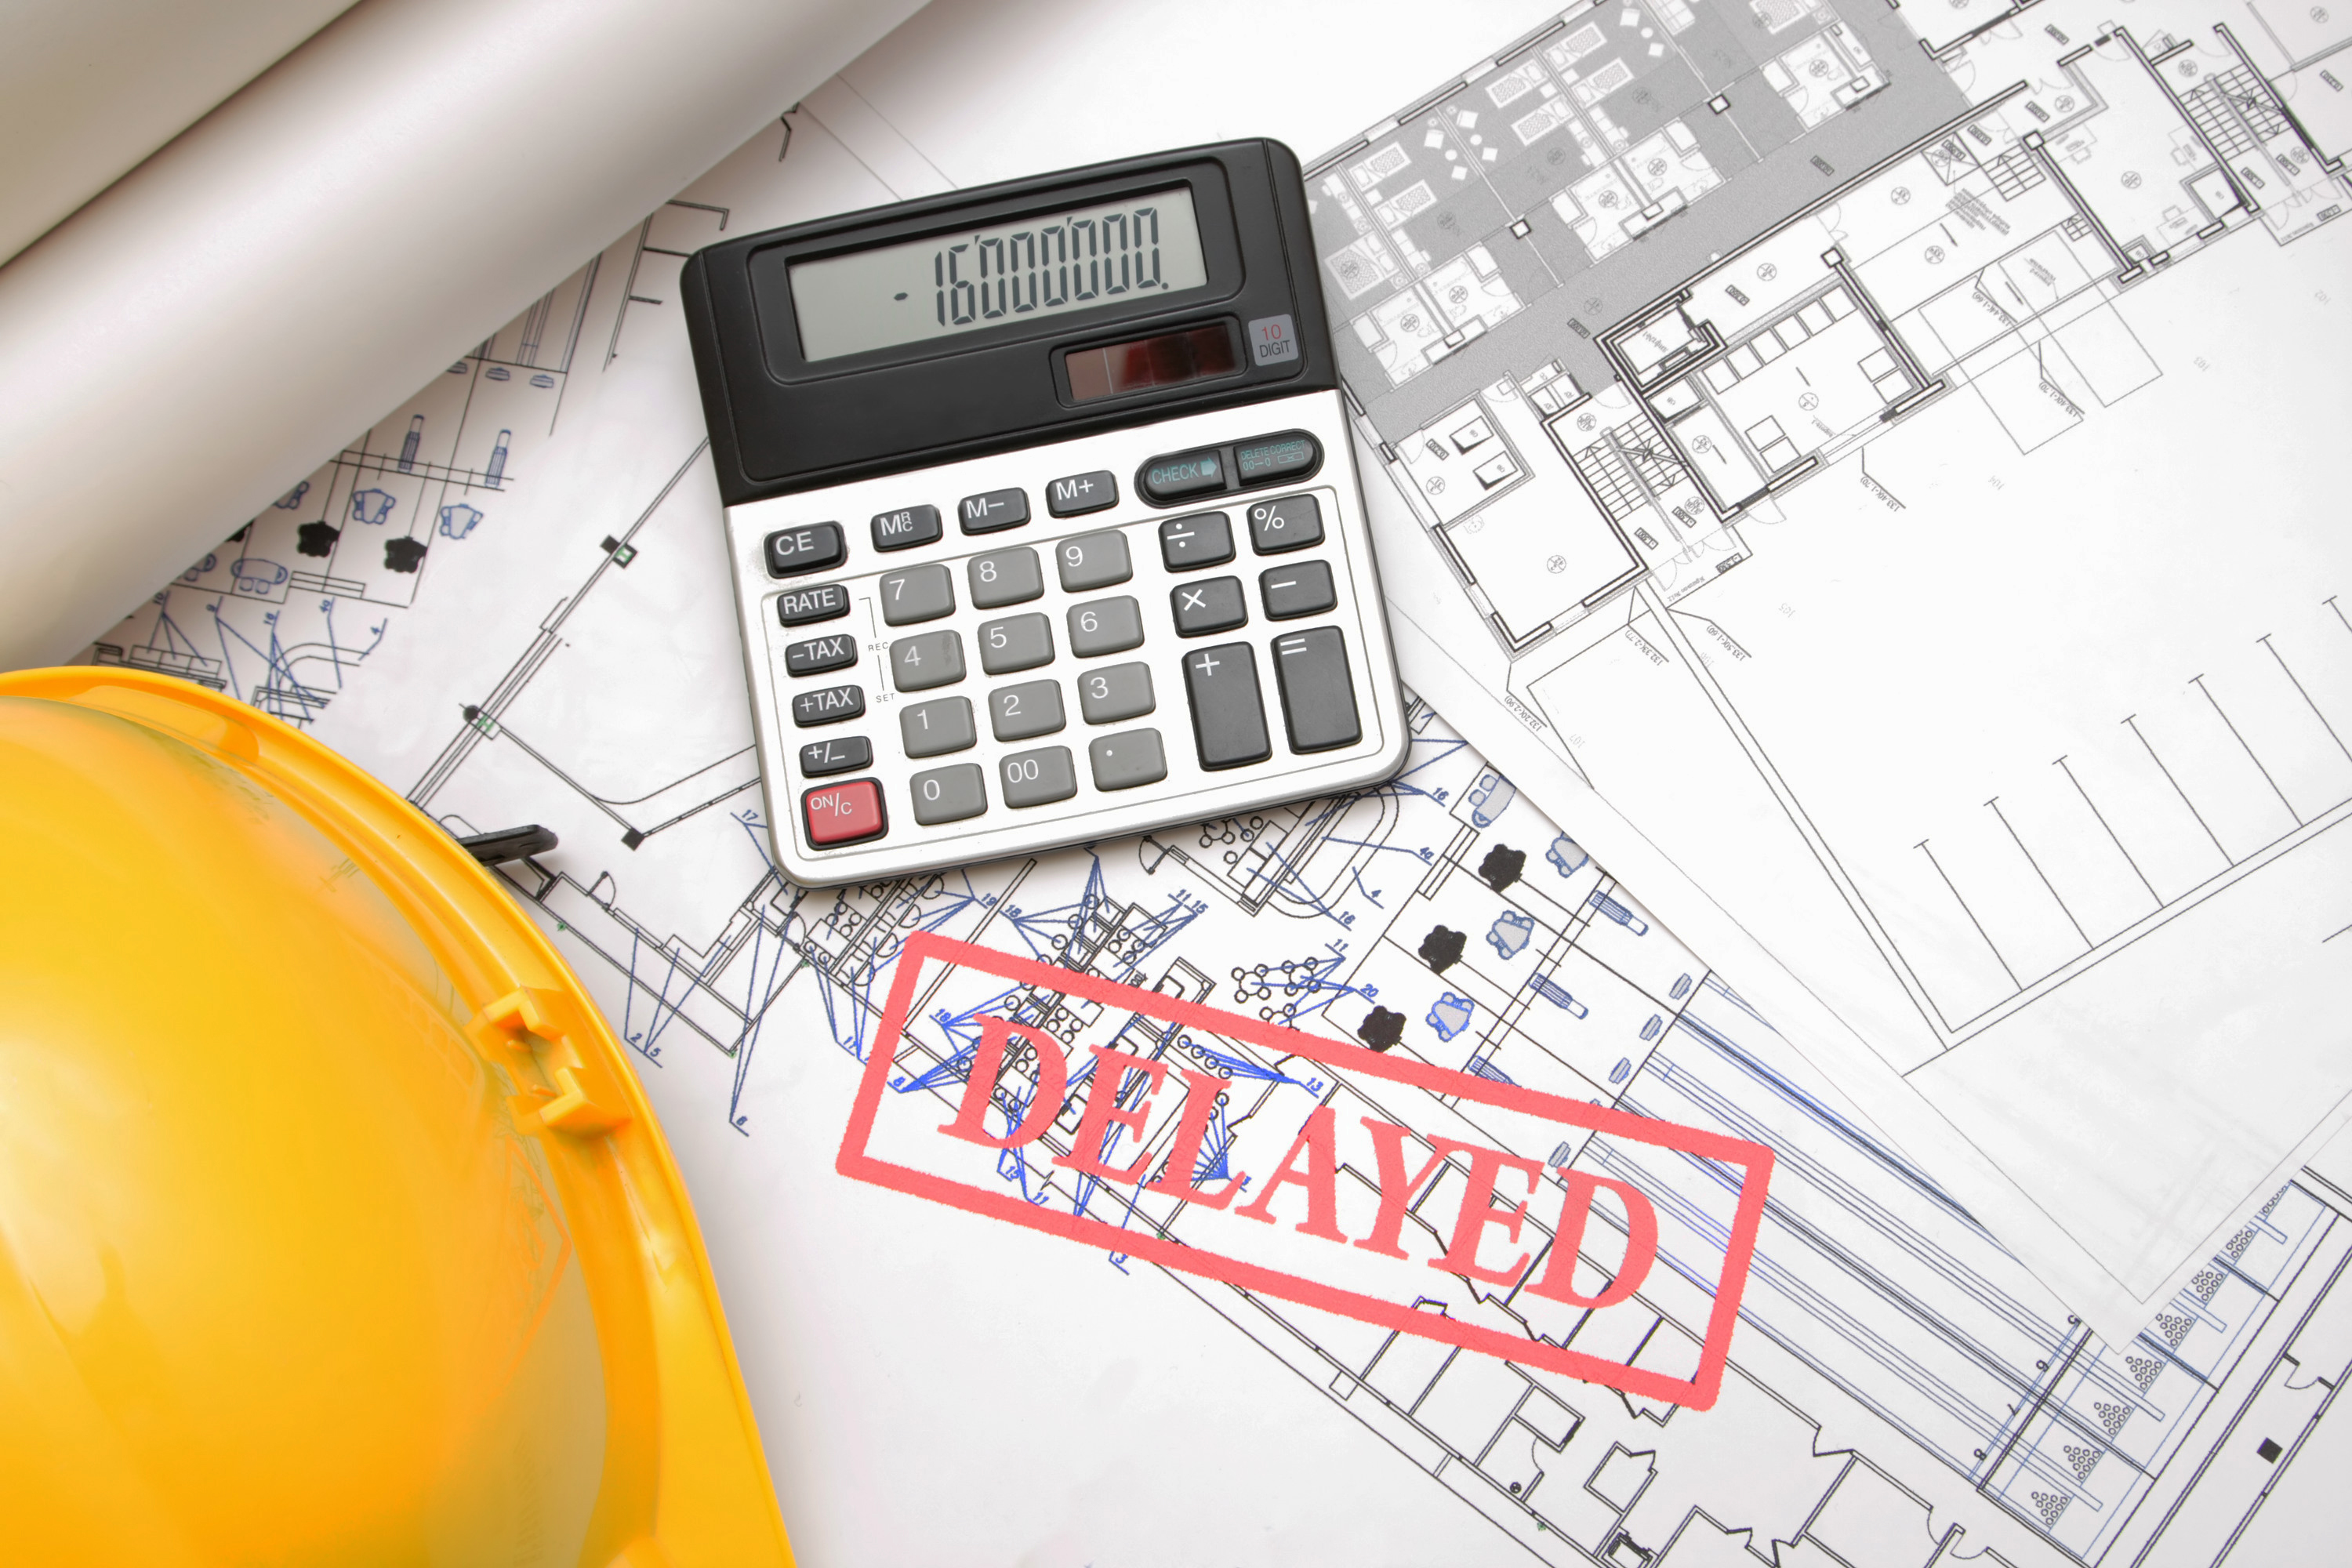 """Project plans strewn across contractor's desk beside calculator displaying negative calculations. Word """"delayed"""" overlain"""